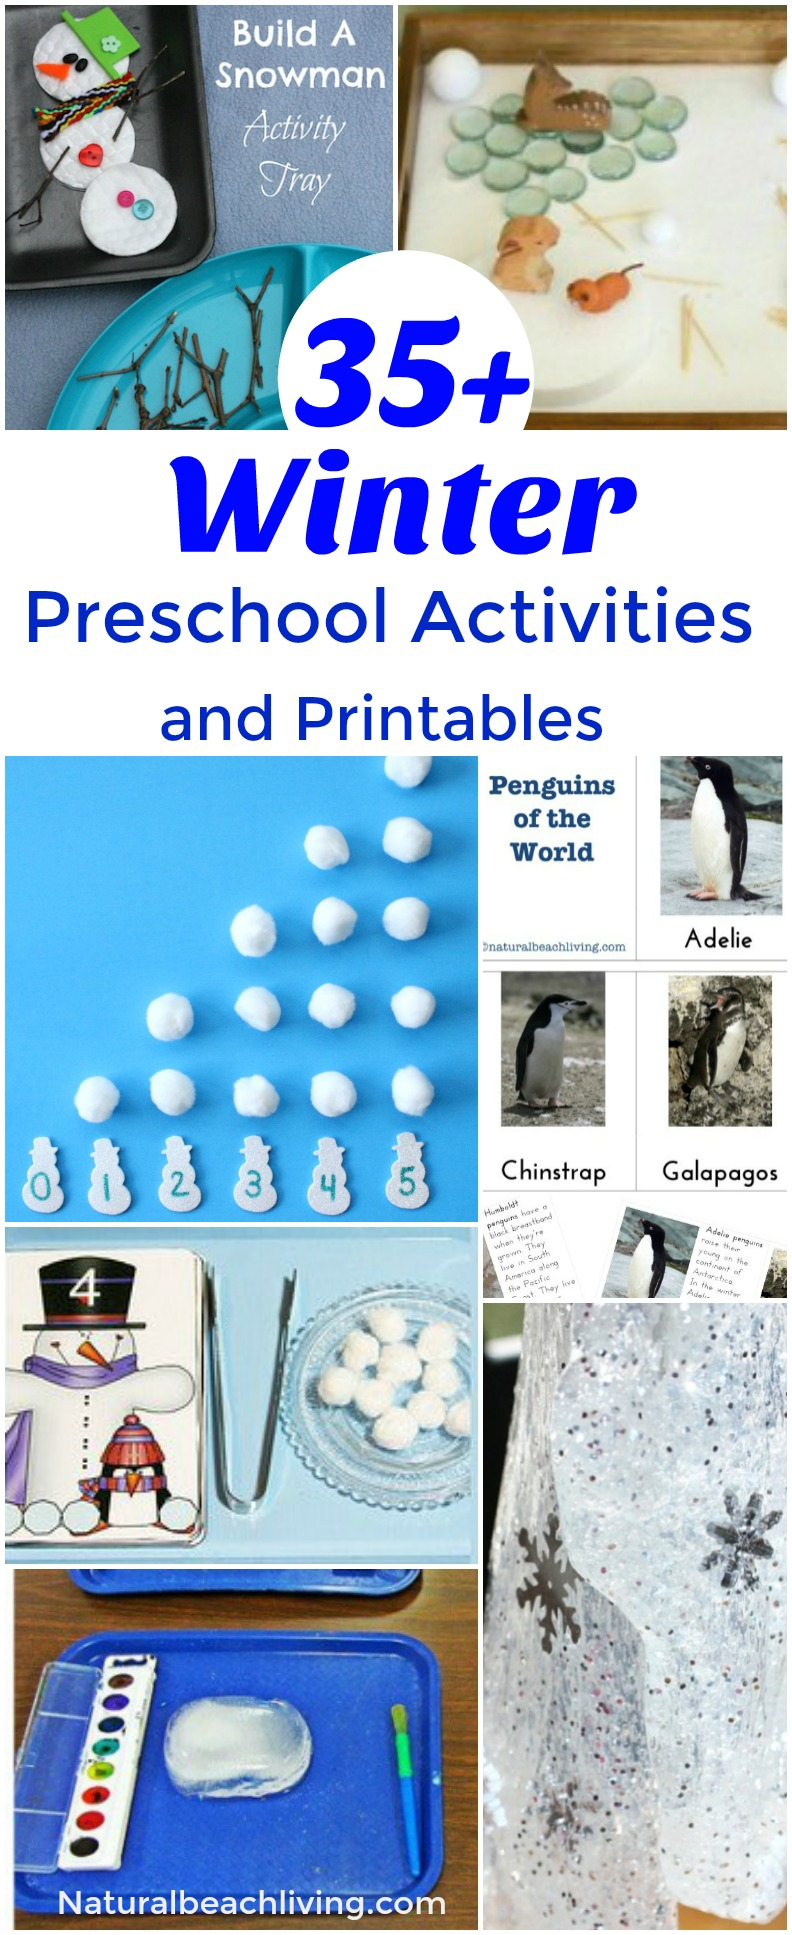 December Preschool Themes and Preschool Lesson Plans, Children will enjoy these wonderful winter themes with activities and printables all season long. List of Themes for Preschool, Acts of Kindness for Preschoolers, 20+ Preschool Activities for Winter with preschool themes for the year #preschool #preschoolactivities #homeschooling